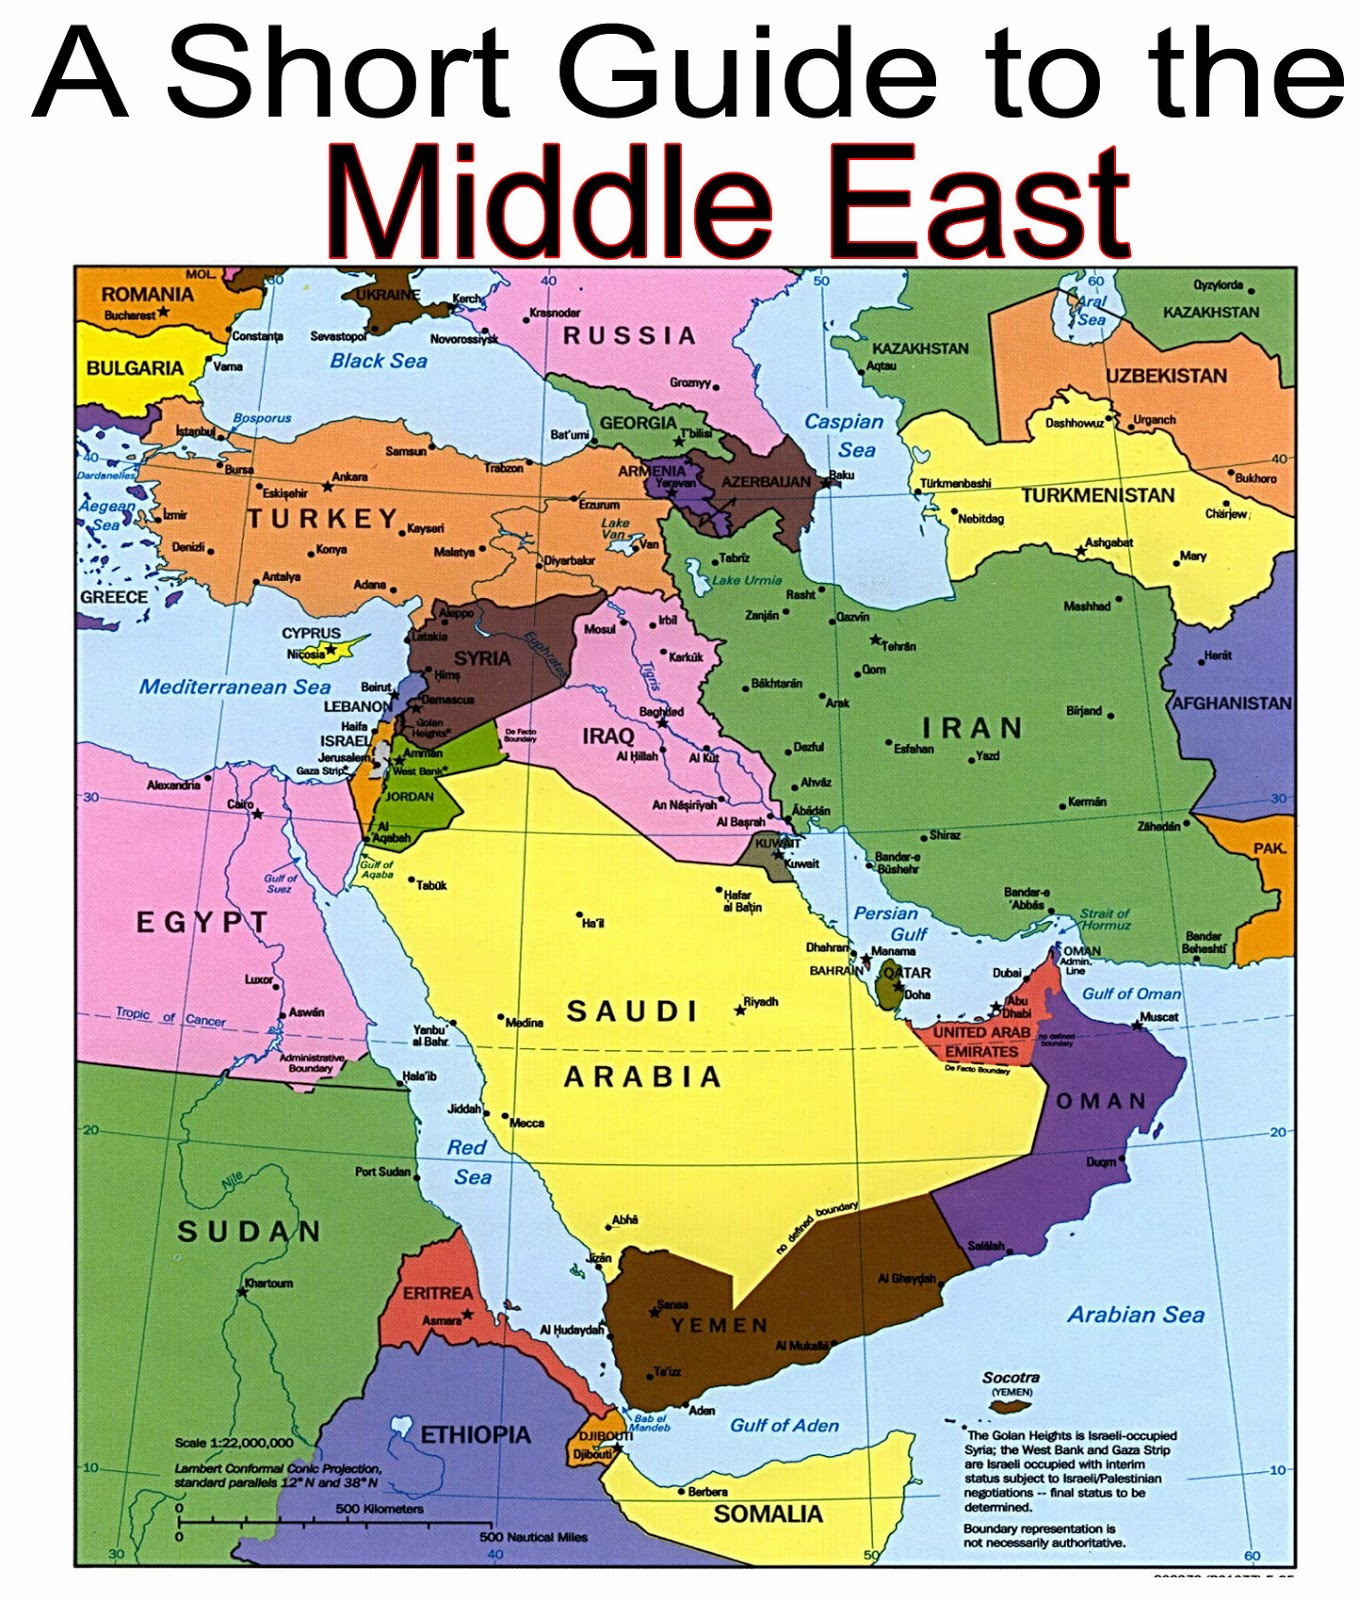 The MiddleEast Conflict